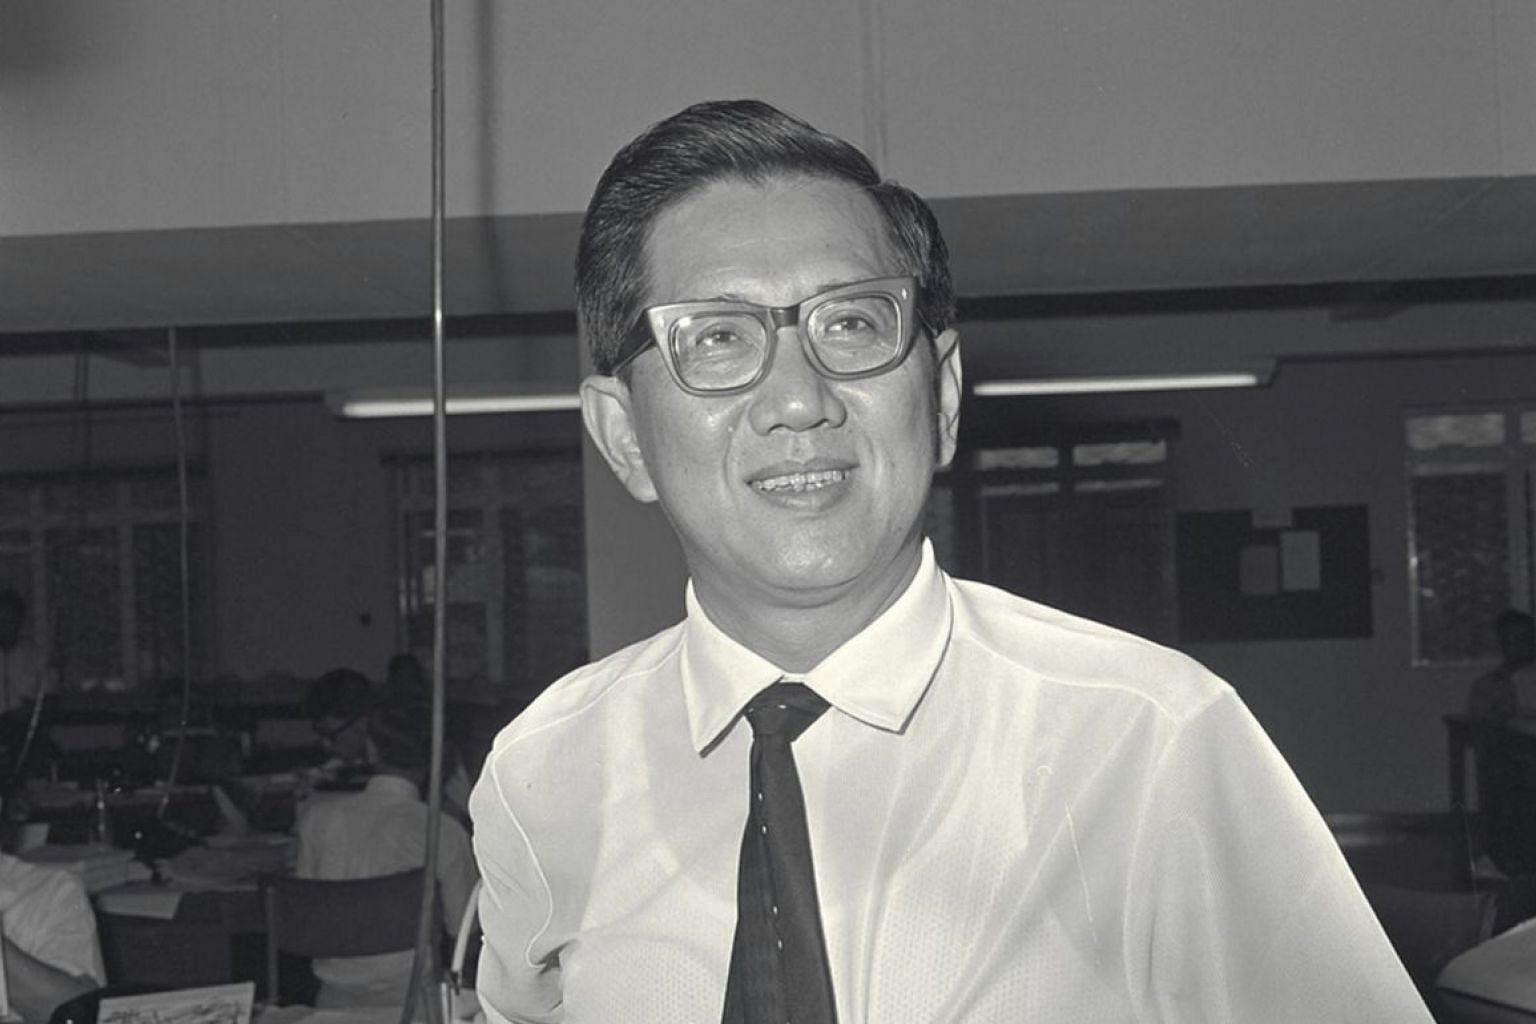 Professor Lim Kok Ann, who became dean of the medical faculty at the then University of Singapore in 1965, also helped establish the newer Sabin polio vaccine in the 1960s.